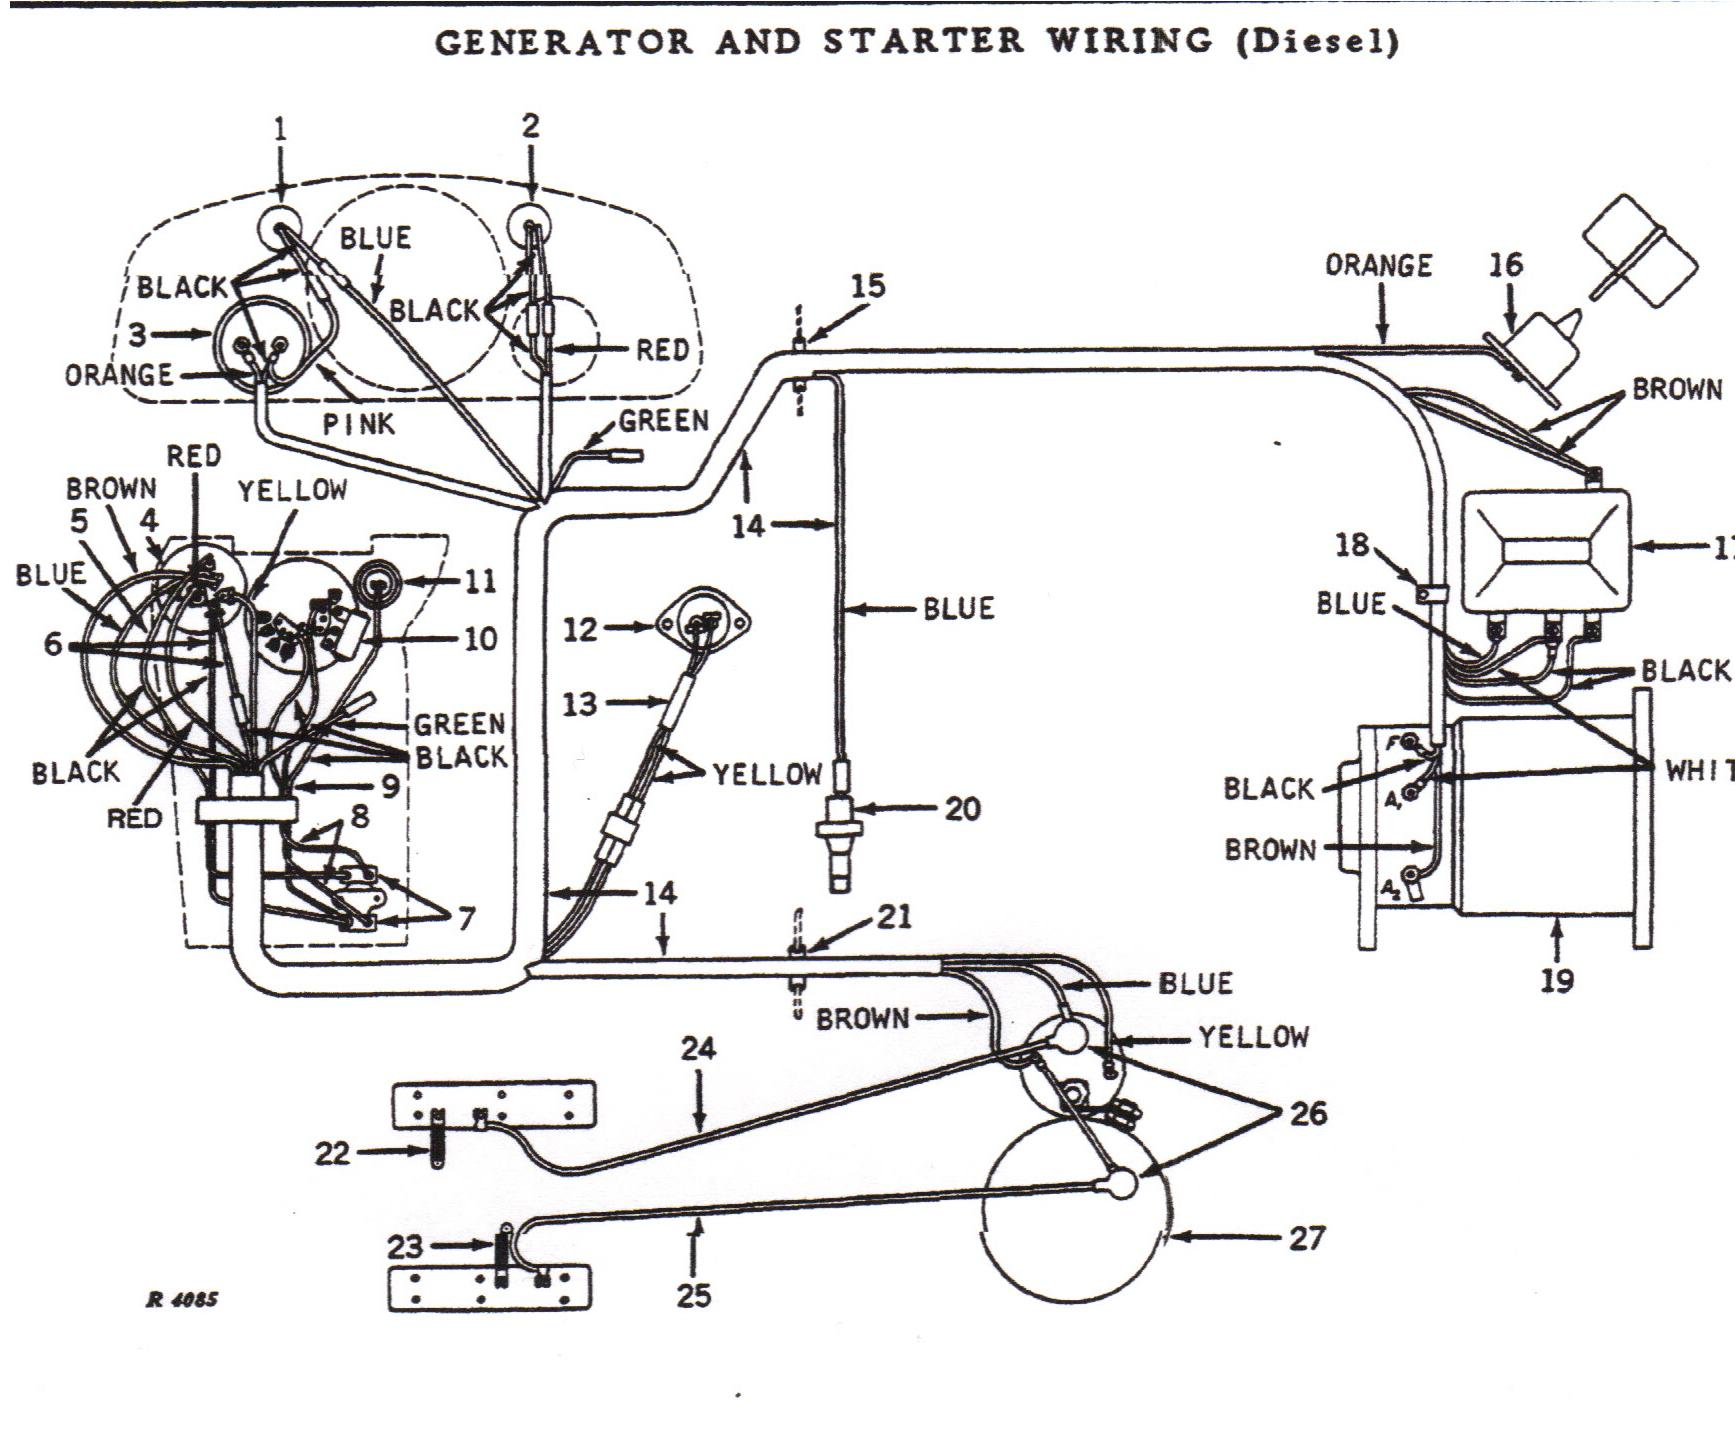 john deere 4030 wiring diagram i have a jd 4030 diesel that will not start. has new ...